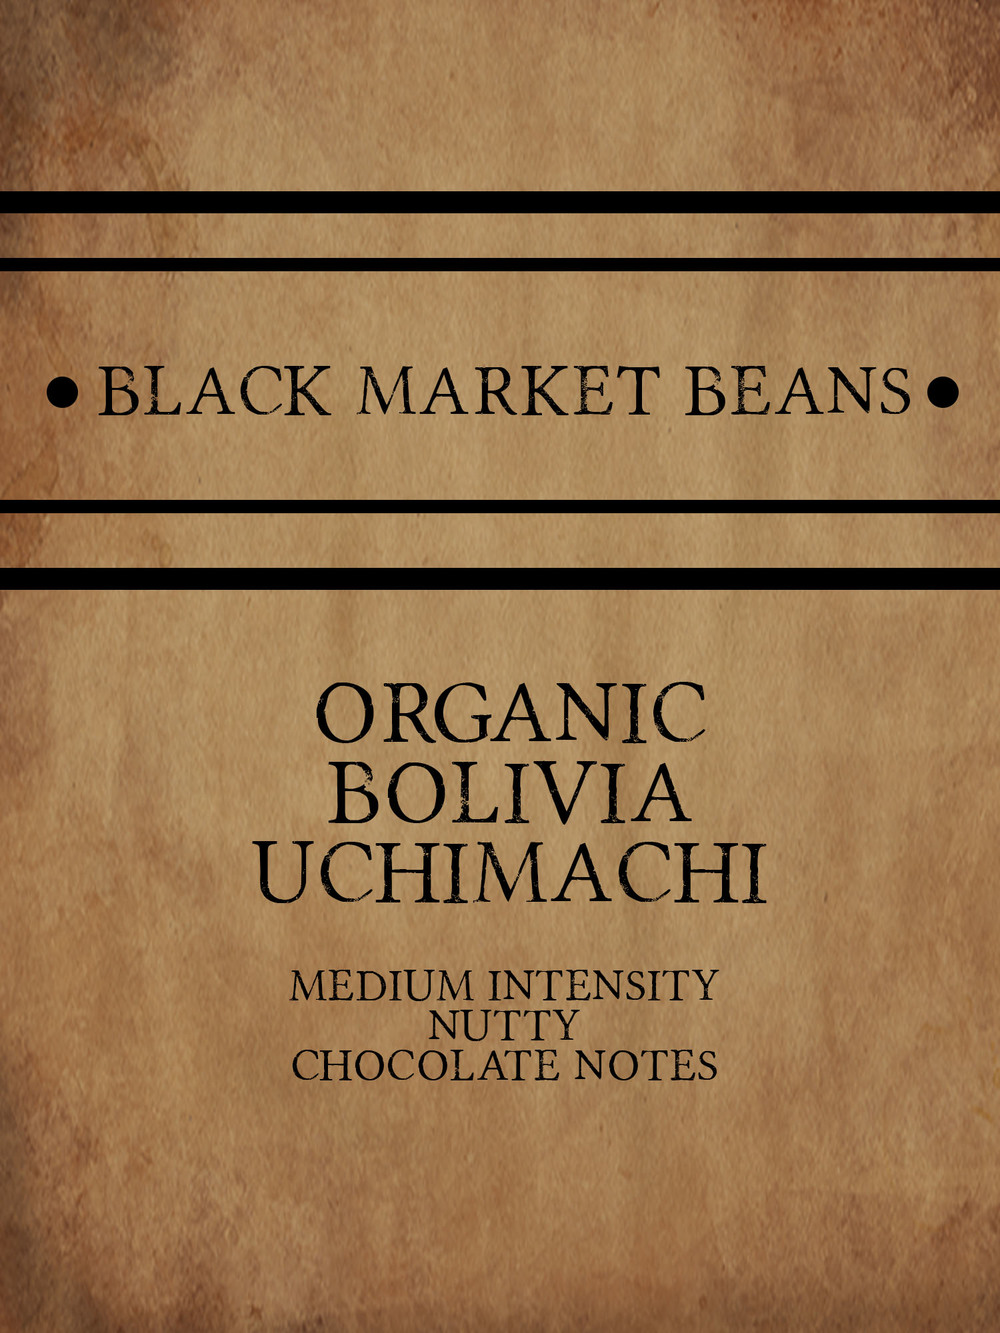 coffee_card_Bolivia_uchamachi.jpg